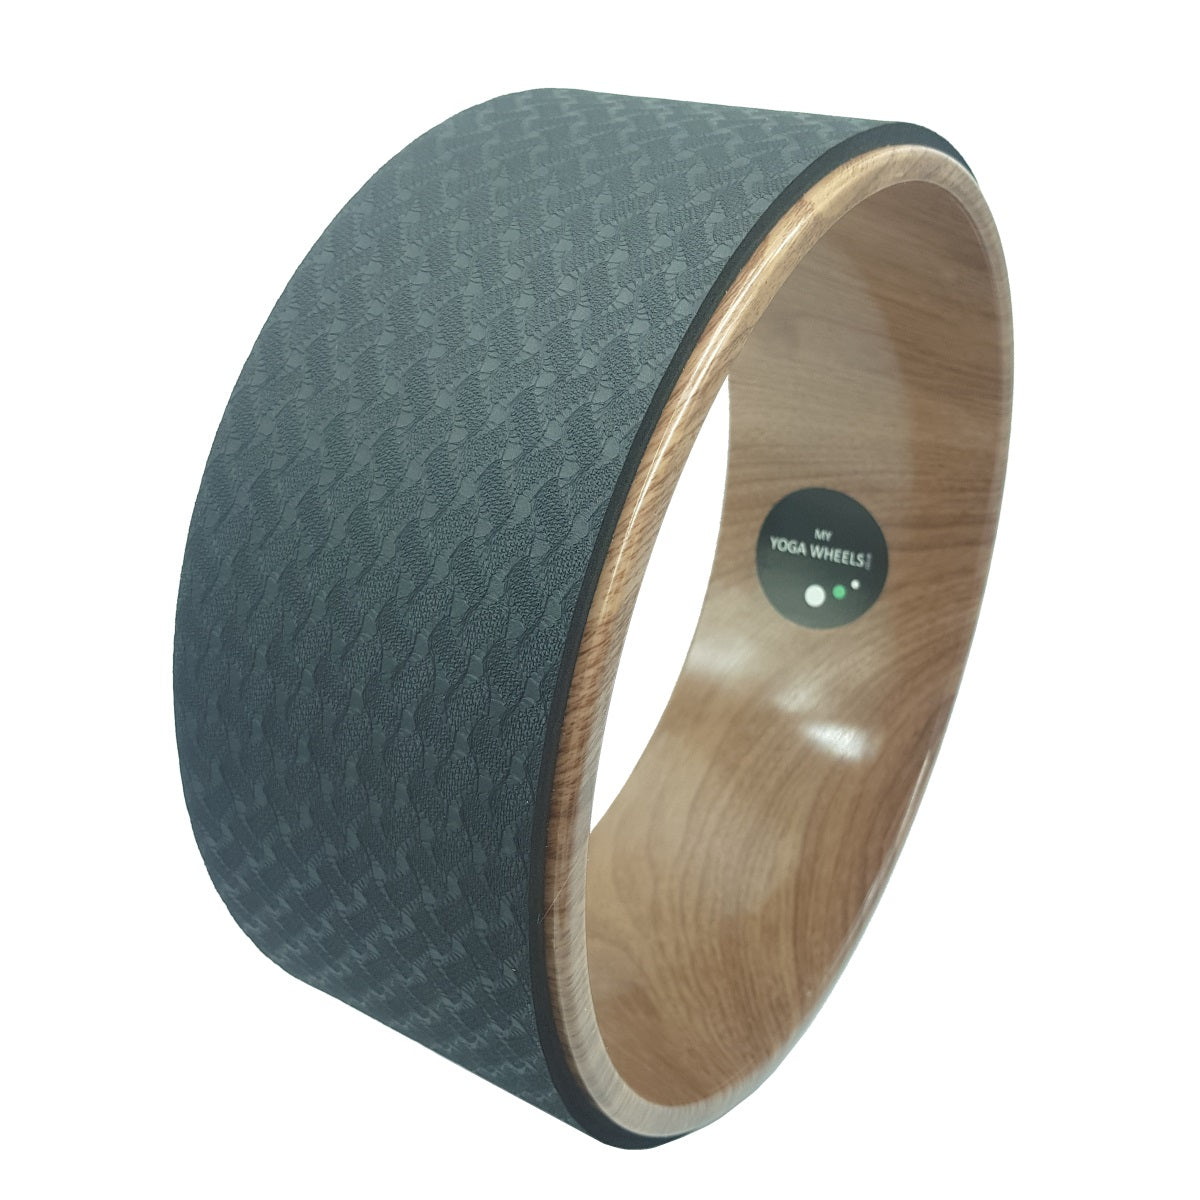 Wood Effect + Black Yoga Wheel - MyYogaWheels - buy yoga wheel and accessories online